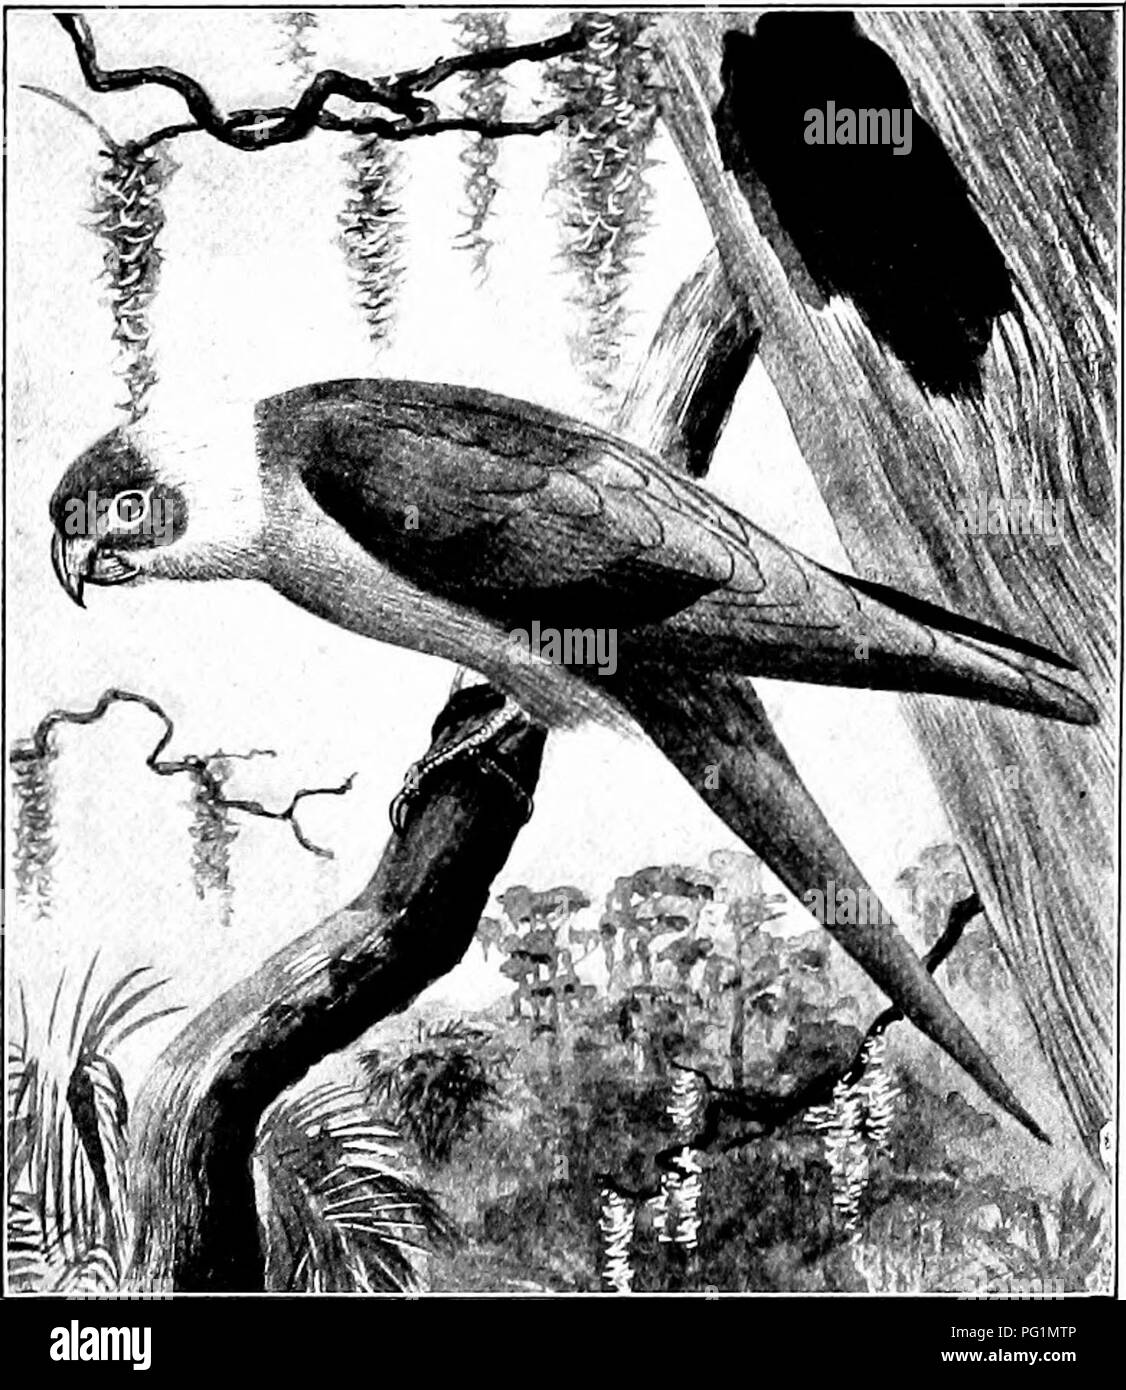 . The American natural history; a foundation of useful knowledge of the higher animals of North America. Natural history. CHAPTER XX THE ORDER OF PARROTS AND MACAWS PSITTACI The parrots, parrakeets, macaws and cocka- toos form a large group, containing in all more than 500 species. Of these, about 150 inhabit the New World, but only one species is found in the United States. South America contains the greatest number of species; Africa and Asia are but poorly supplied, and Europe has none. The widest departures from the standard types are found in New Zealand and Australia.. Drawn by Edmund J. - Stock Image